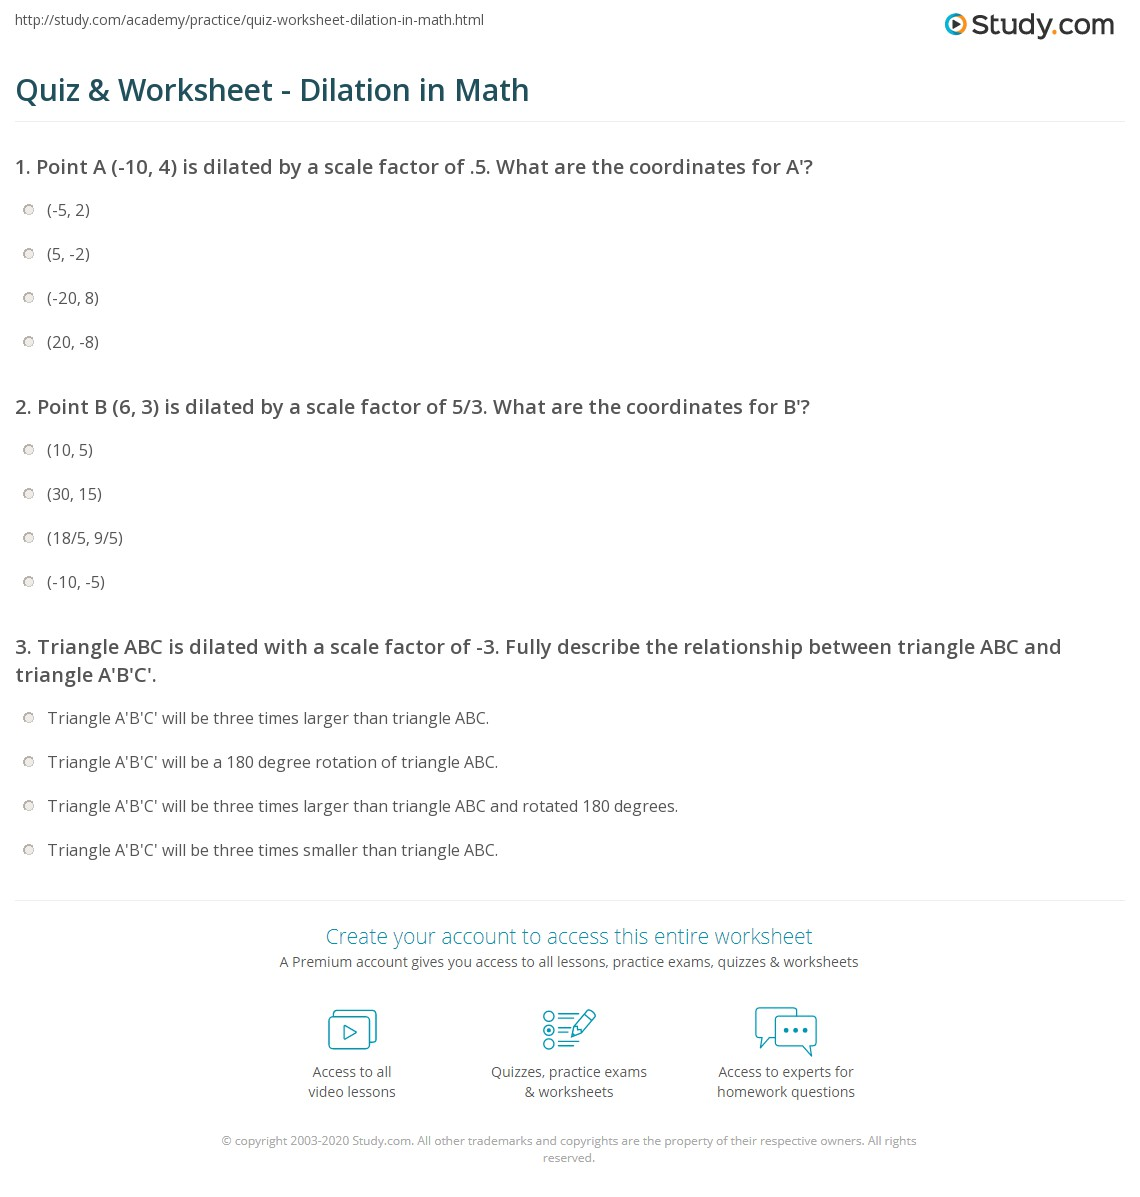 math worksheet : quiz  worksheet  dilation in math  study  : Dilation Math Worksheets